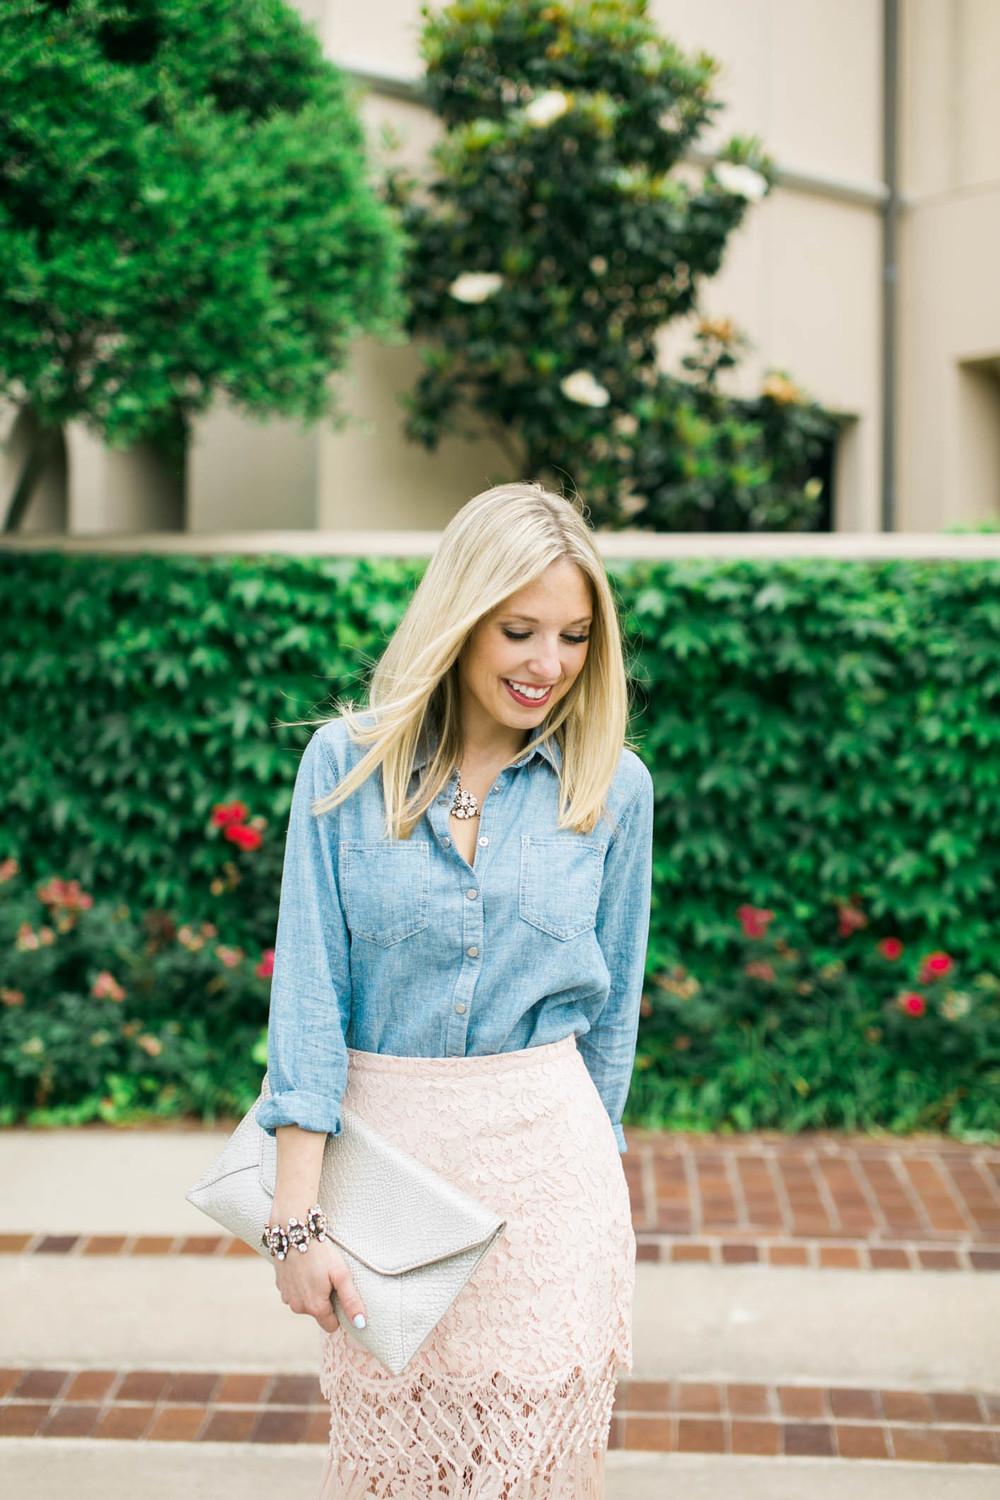 Lace Skirt + Chambray Outfit 4